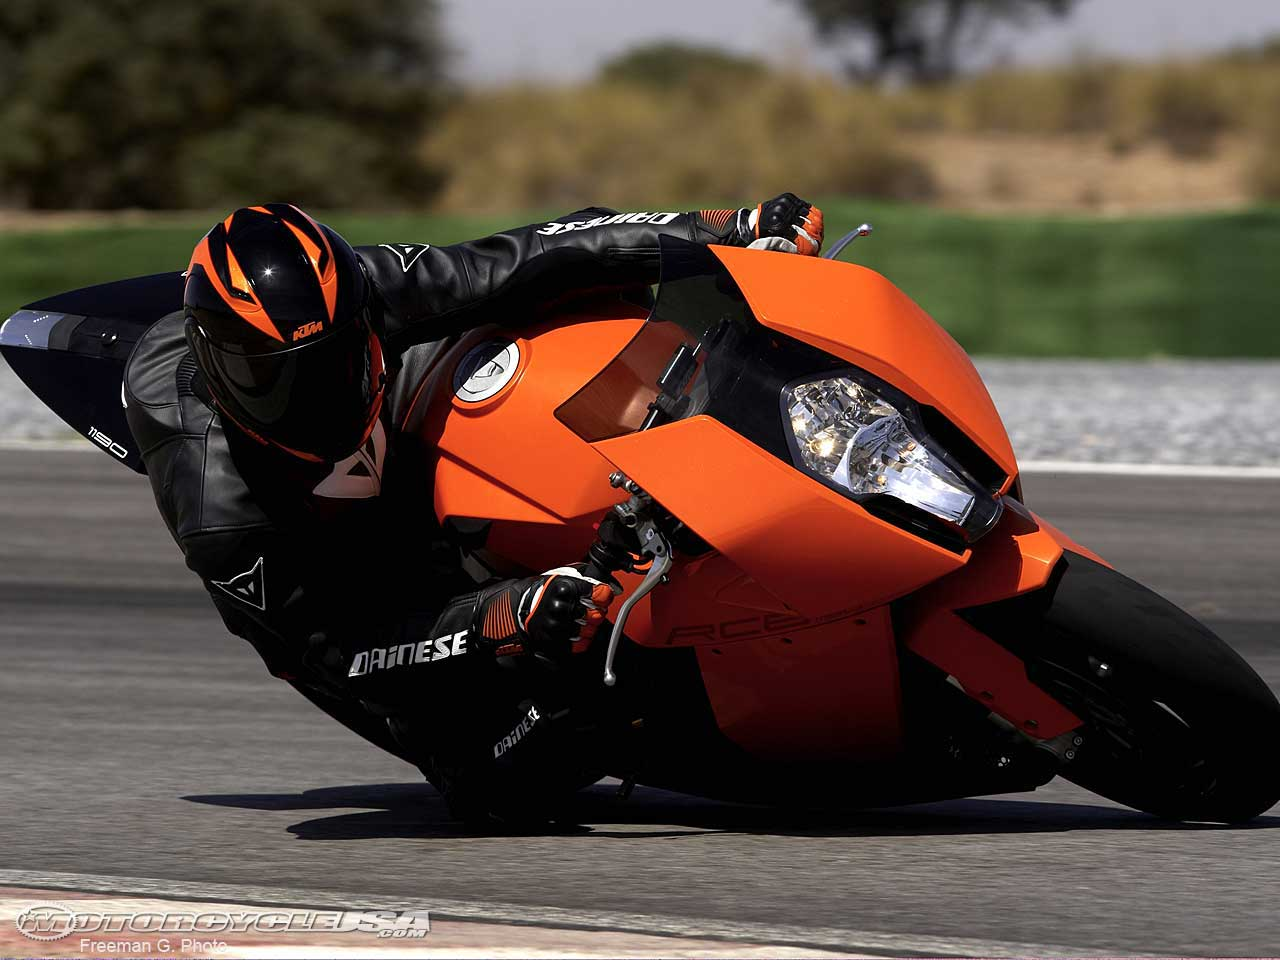 KTM RC8 Wallpaper 1280x960 KTM RC8 Motorbikes 1280x960